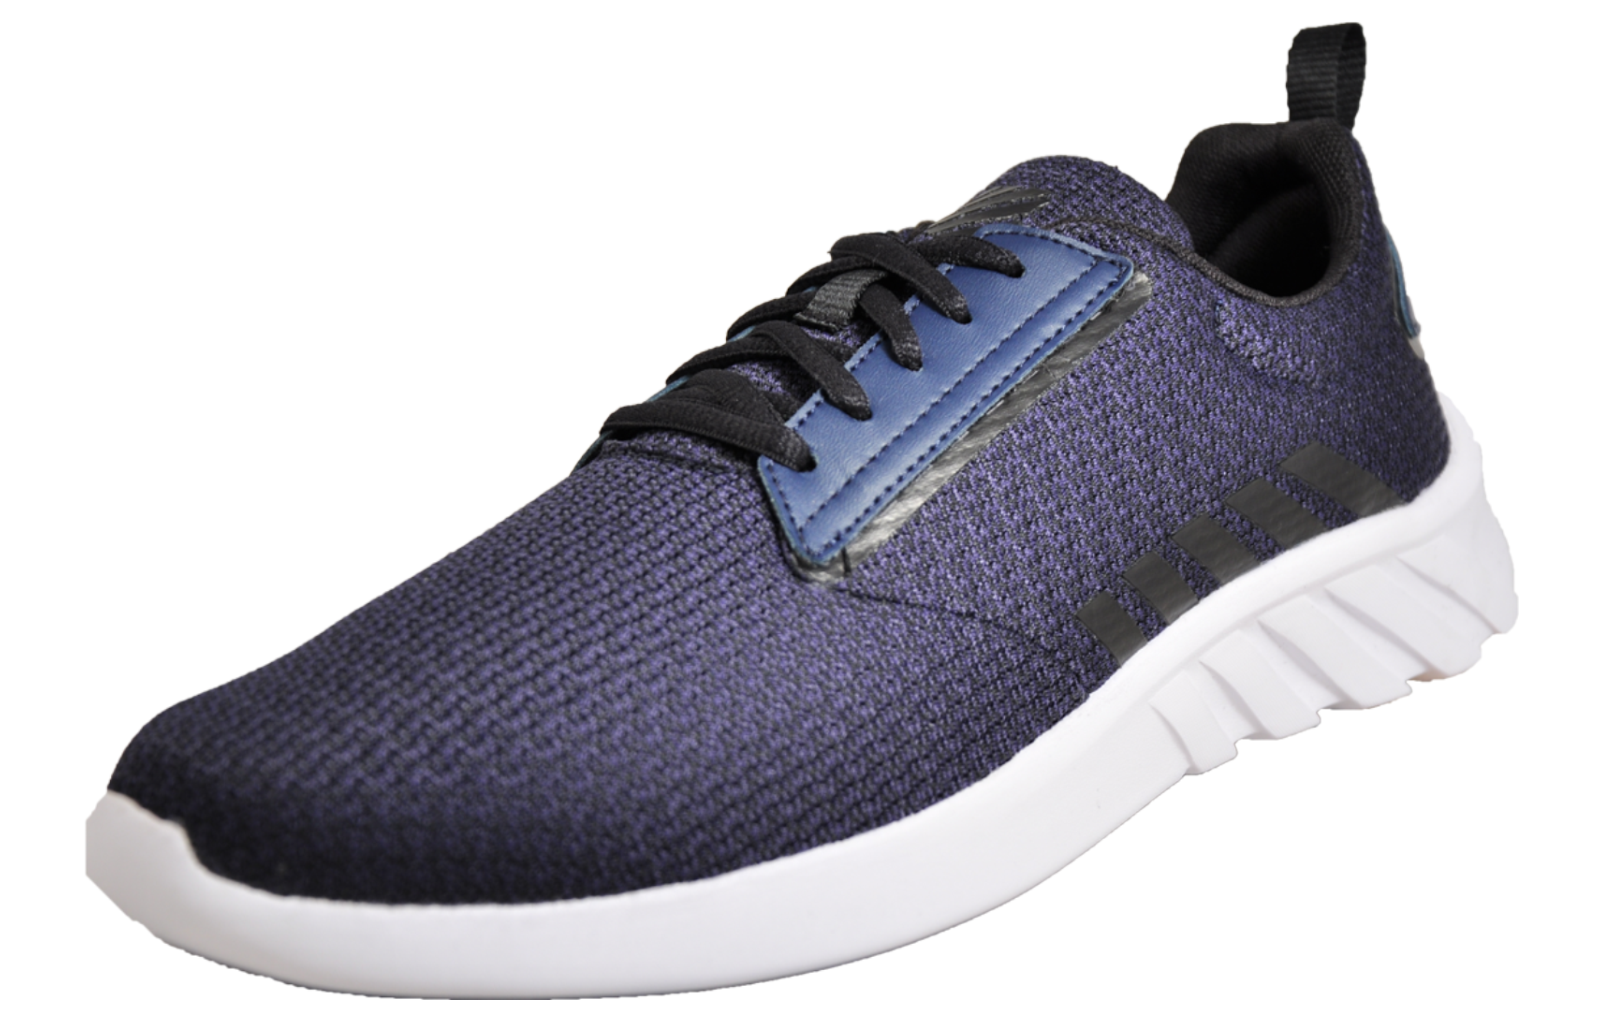 K Swiss Aeronaut Mens - KS180836